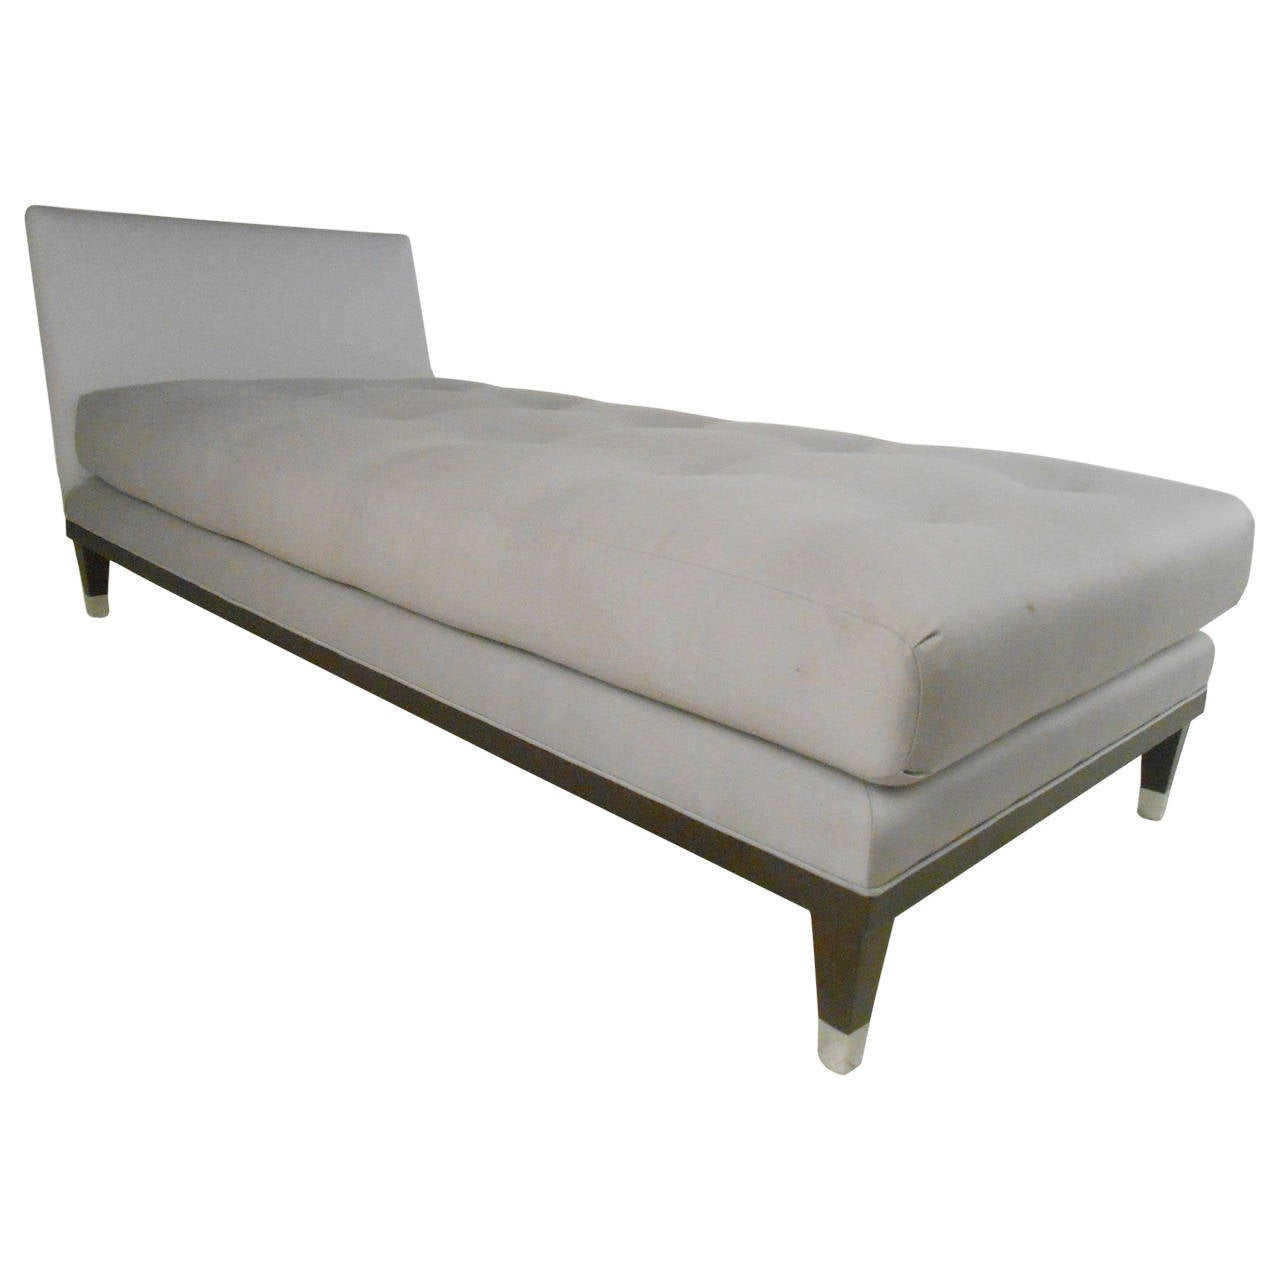 Contemporary chaise lounge contemporary barcelona style for Chaise longue barcelona